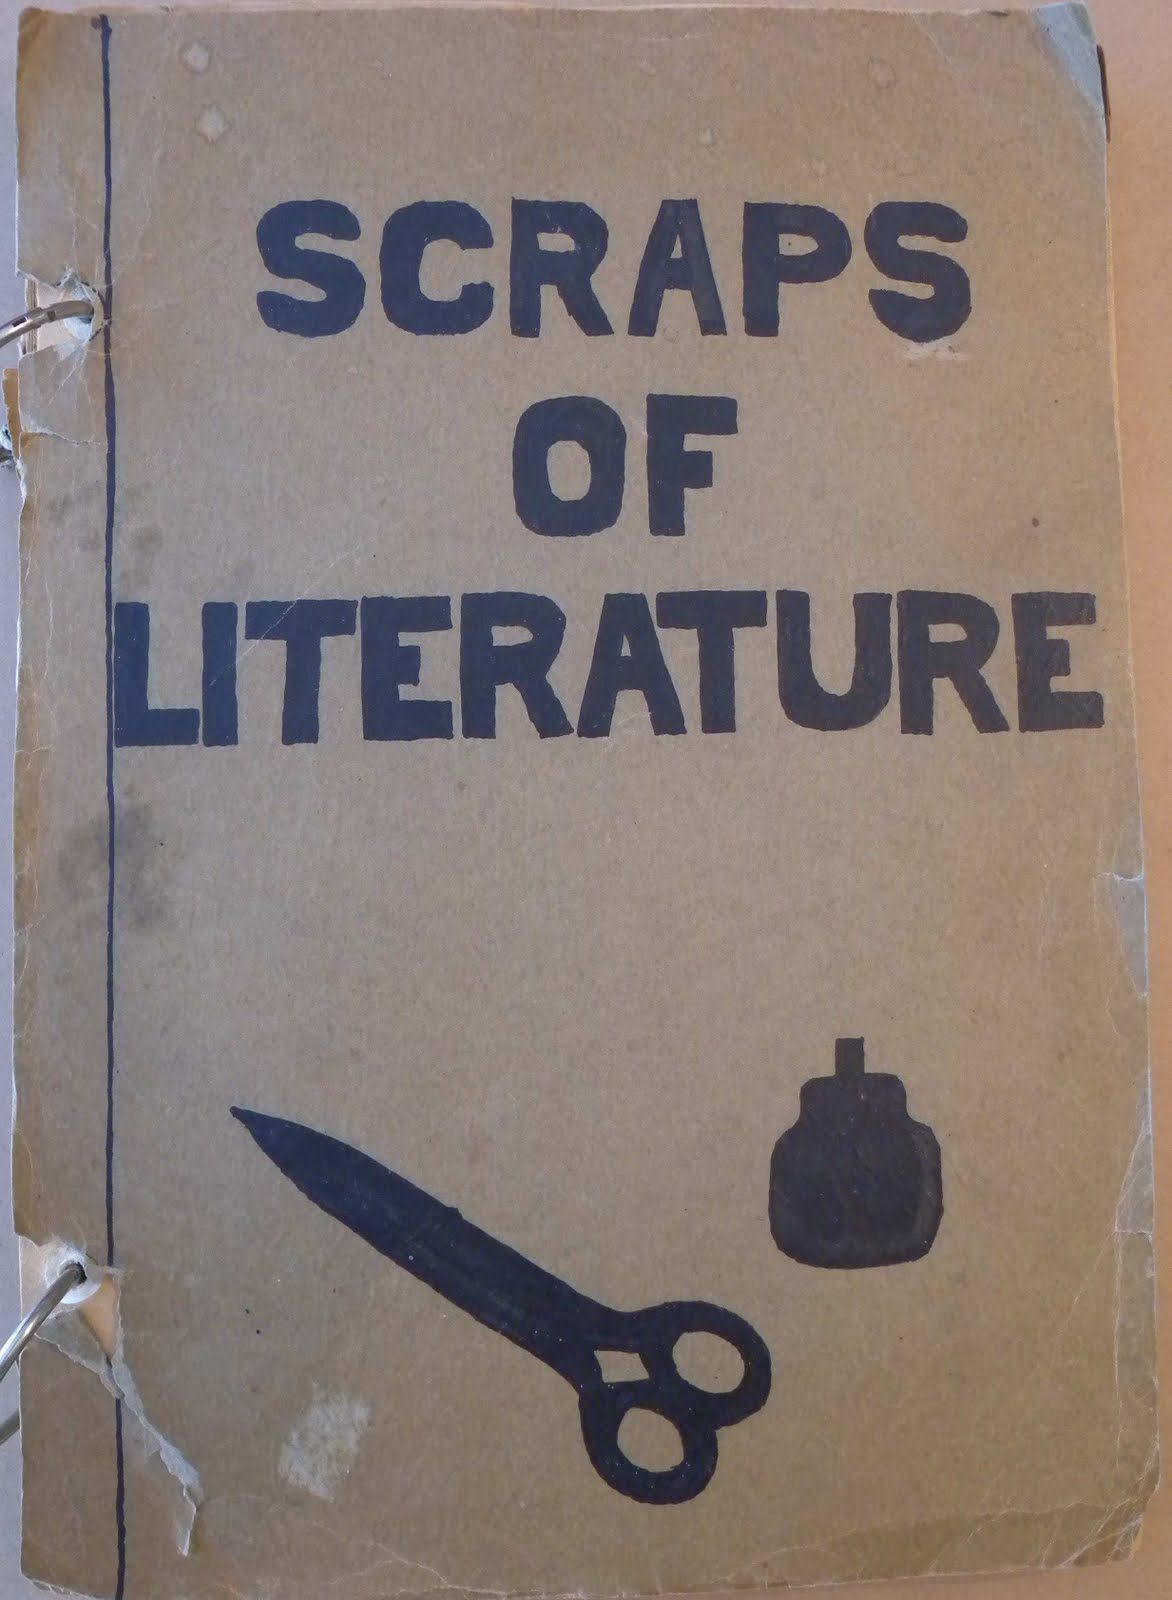 poetry popular culture scraps of literature poetry popular in his recent london review of books essay on anne carson s latest book nox a scrapbooky fold out accordion collage poem assembled in memory of her late